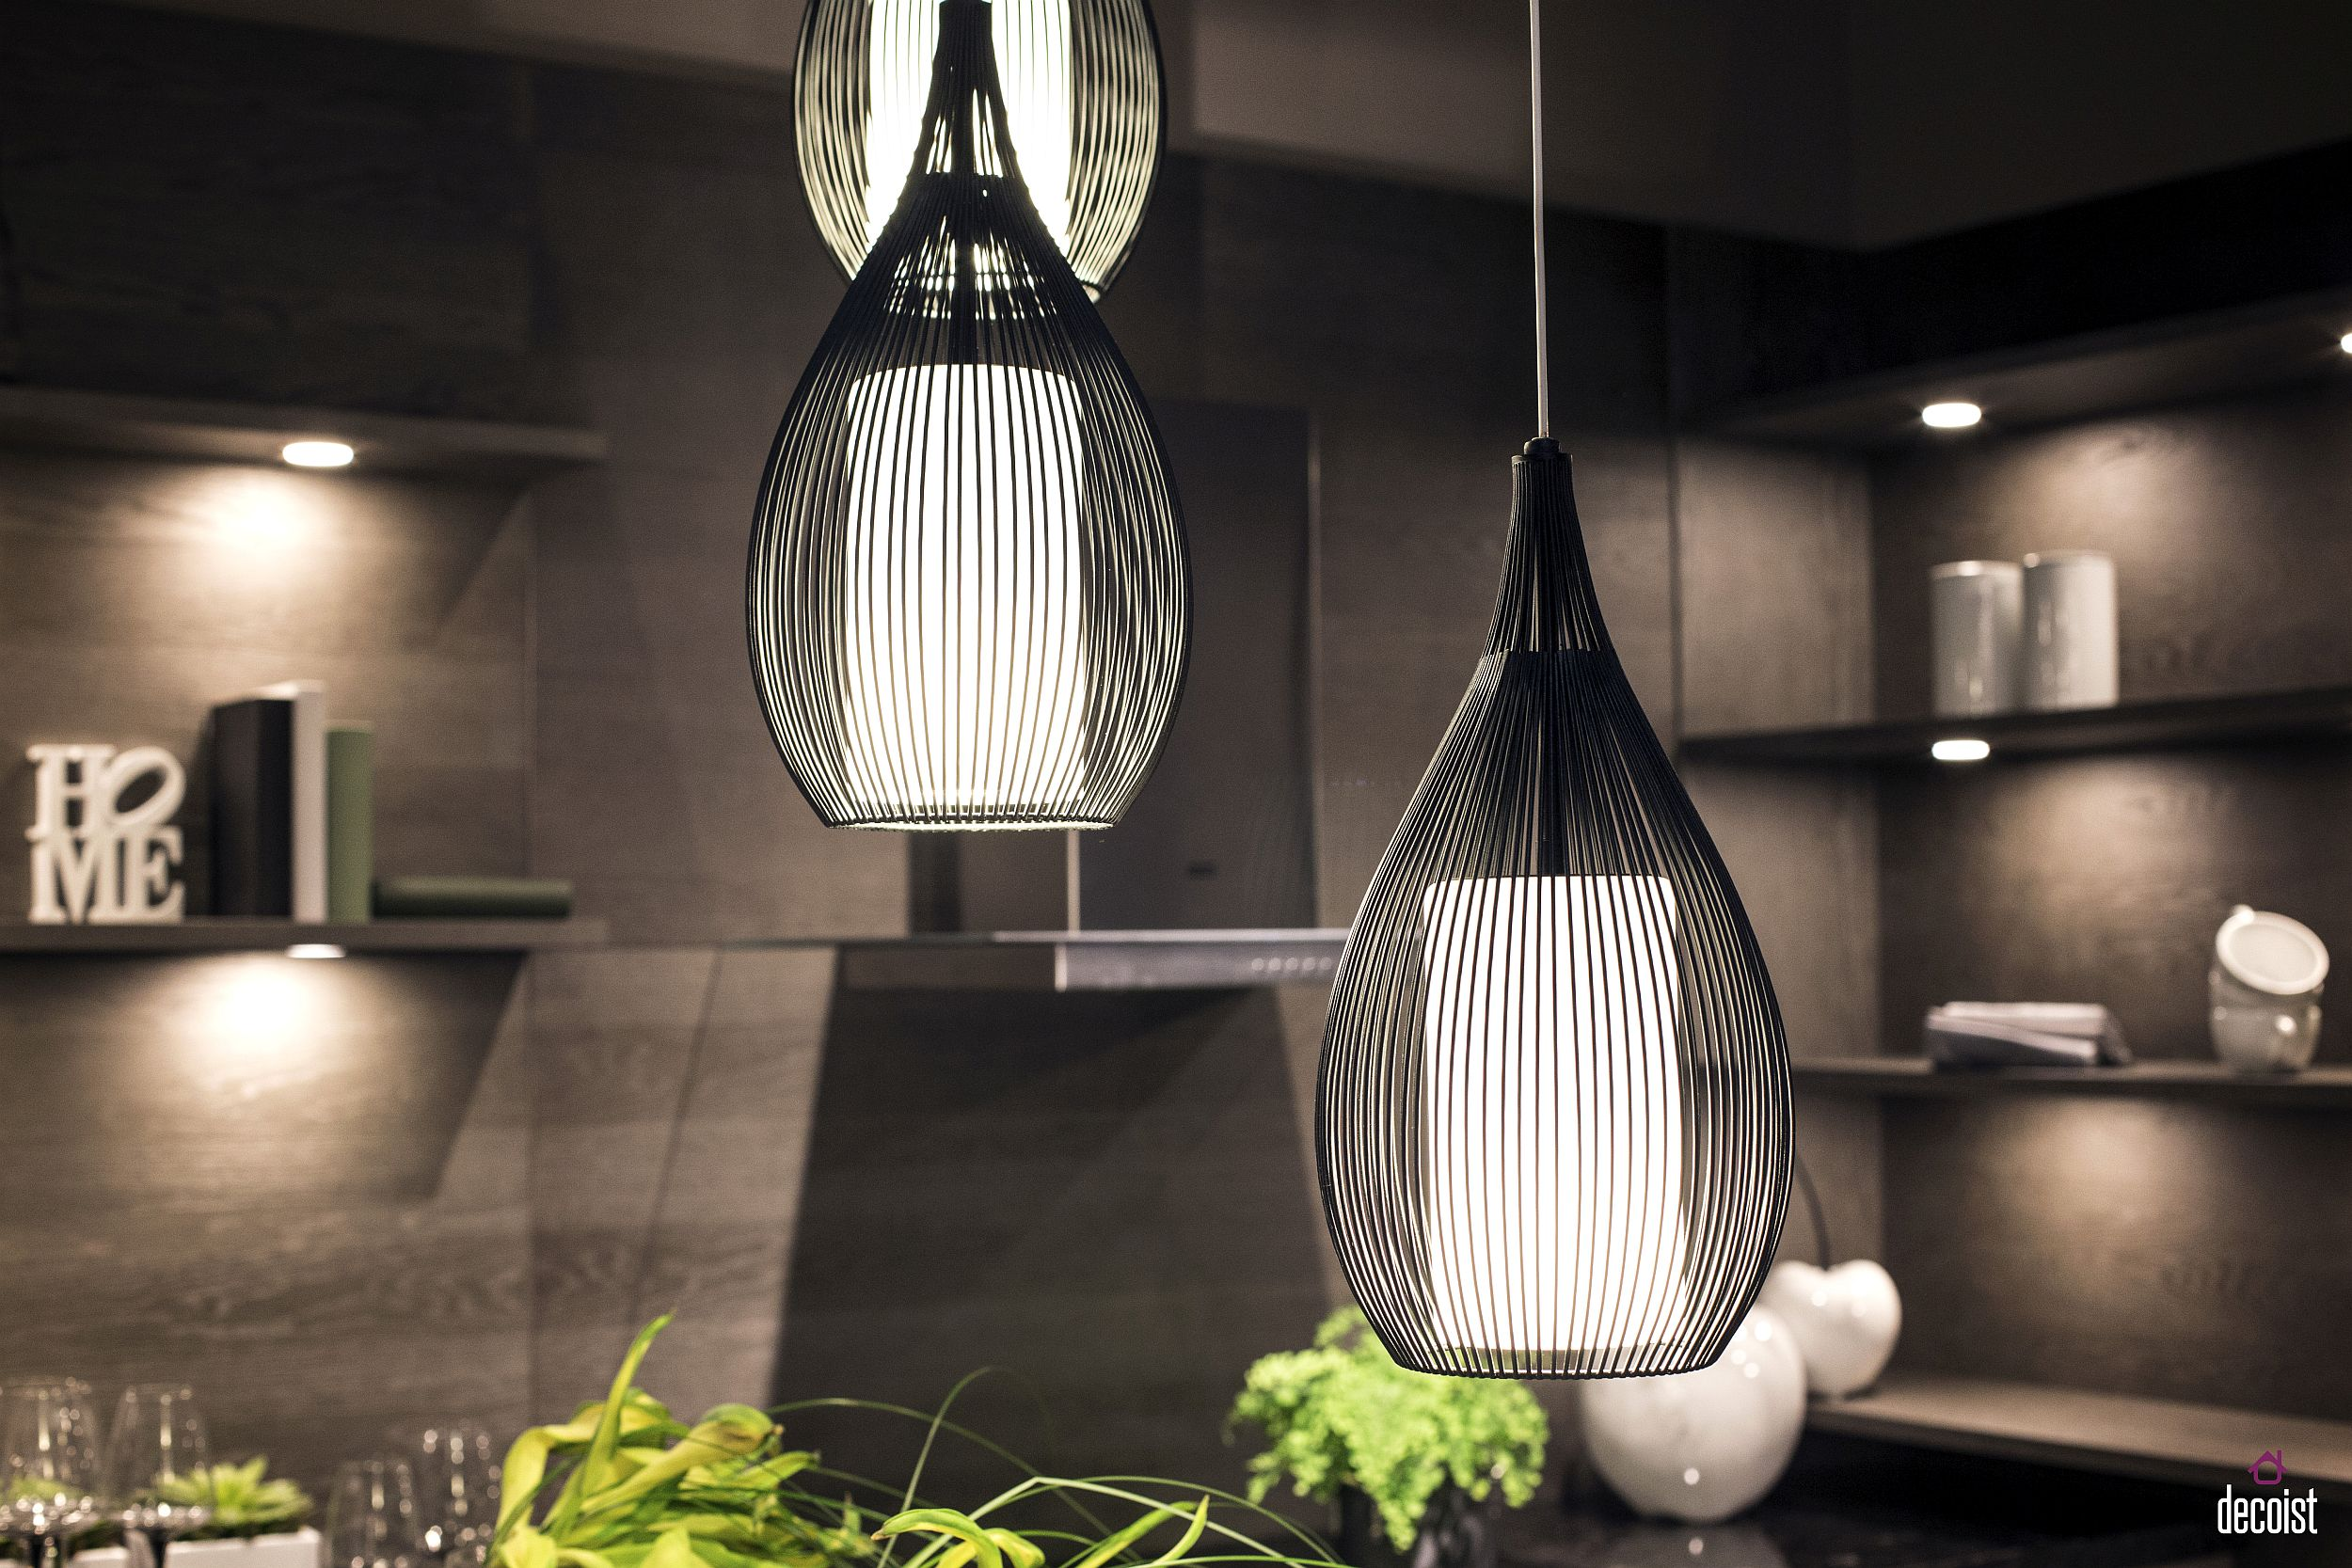 Latest Scandinavian style pendants are perfect for the modern kitchen